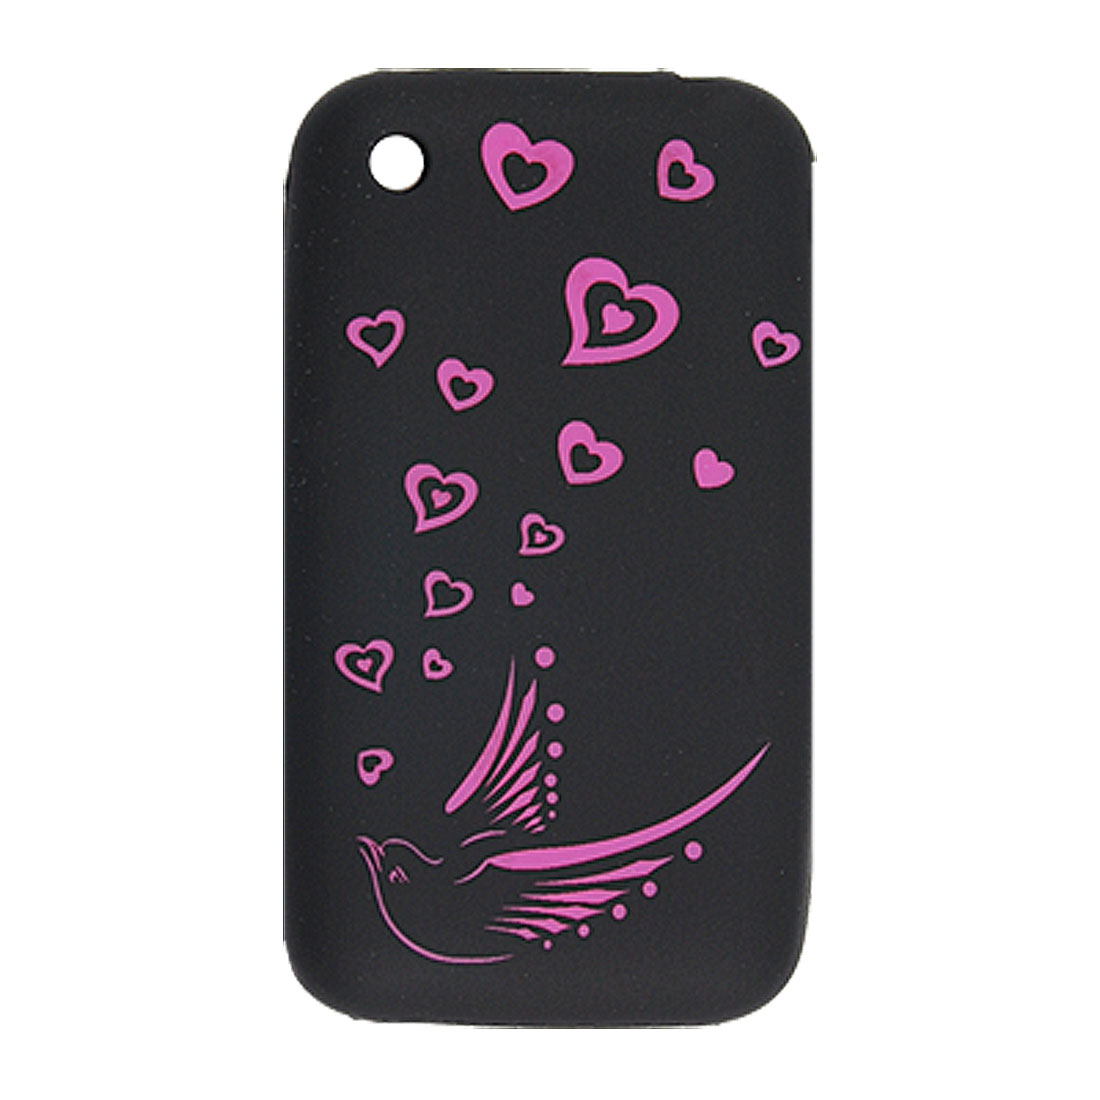 Fuchsia Cut Bird and Hearts Pattern Black Silicone Case for iPhone 3G